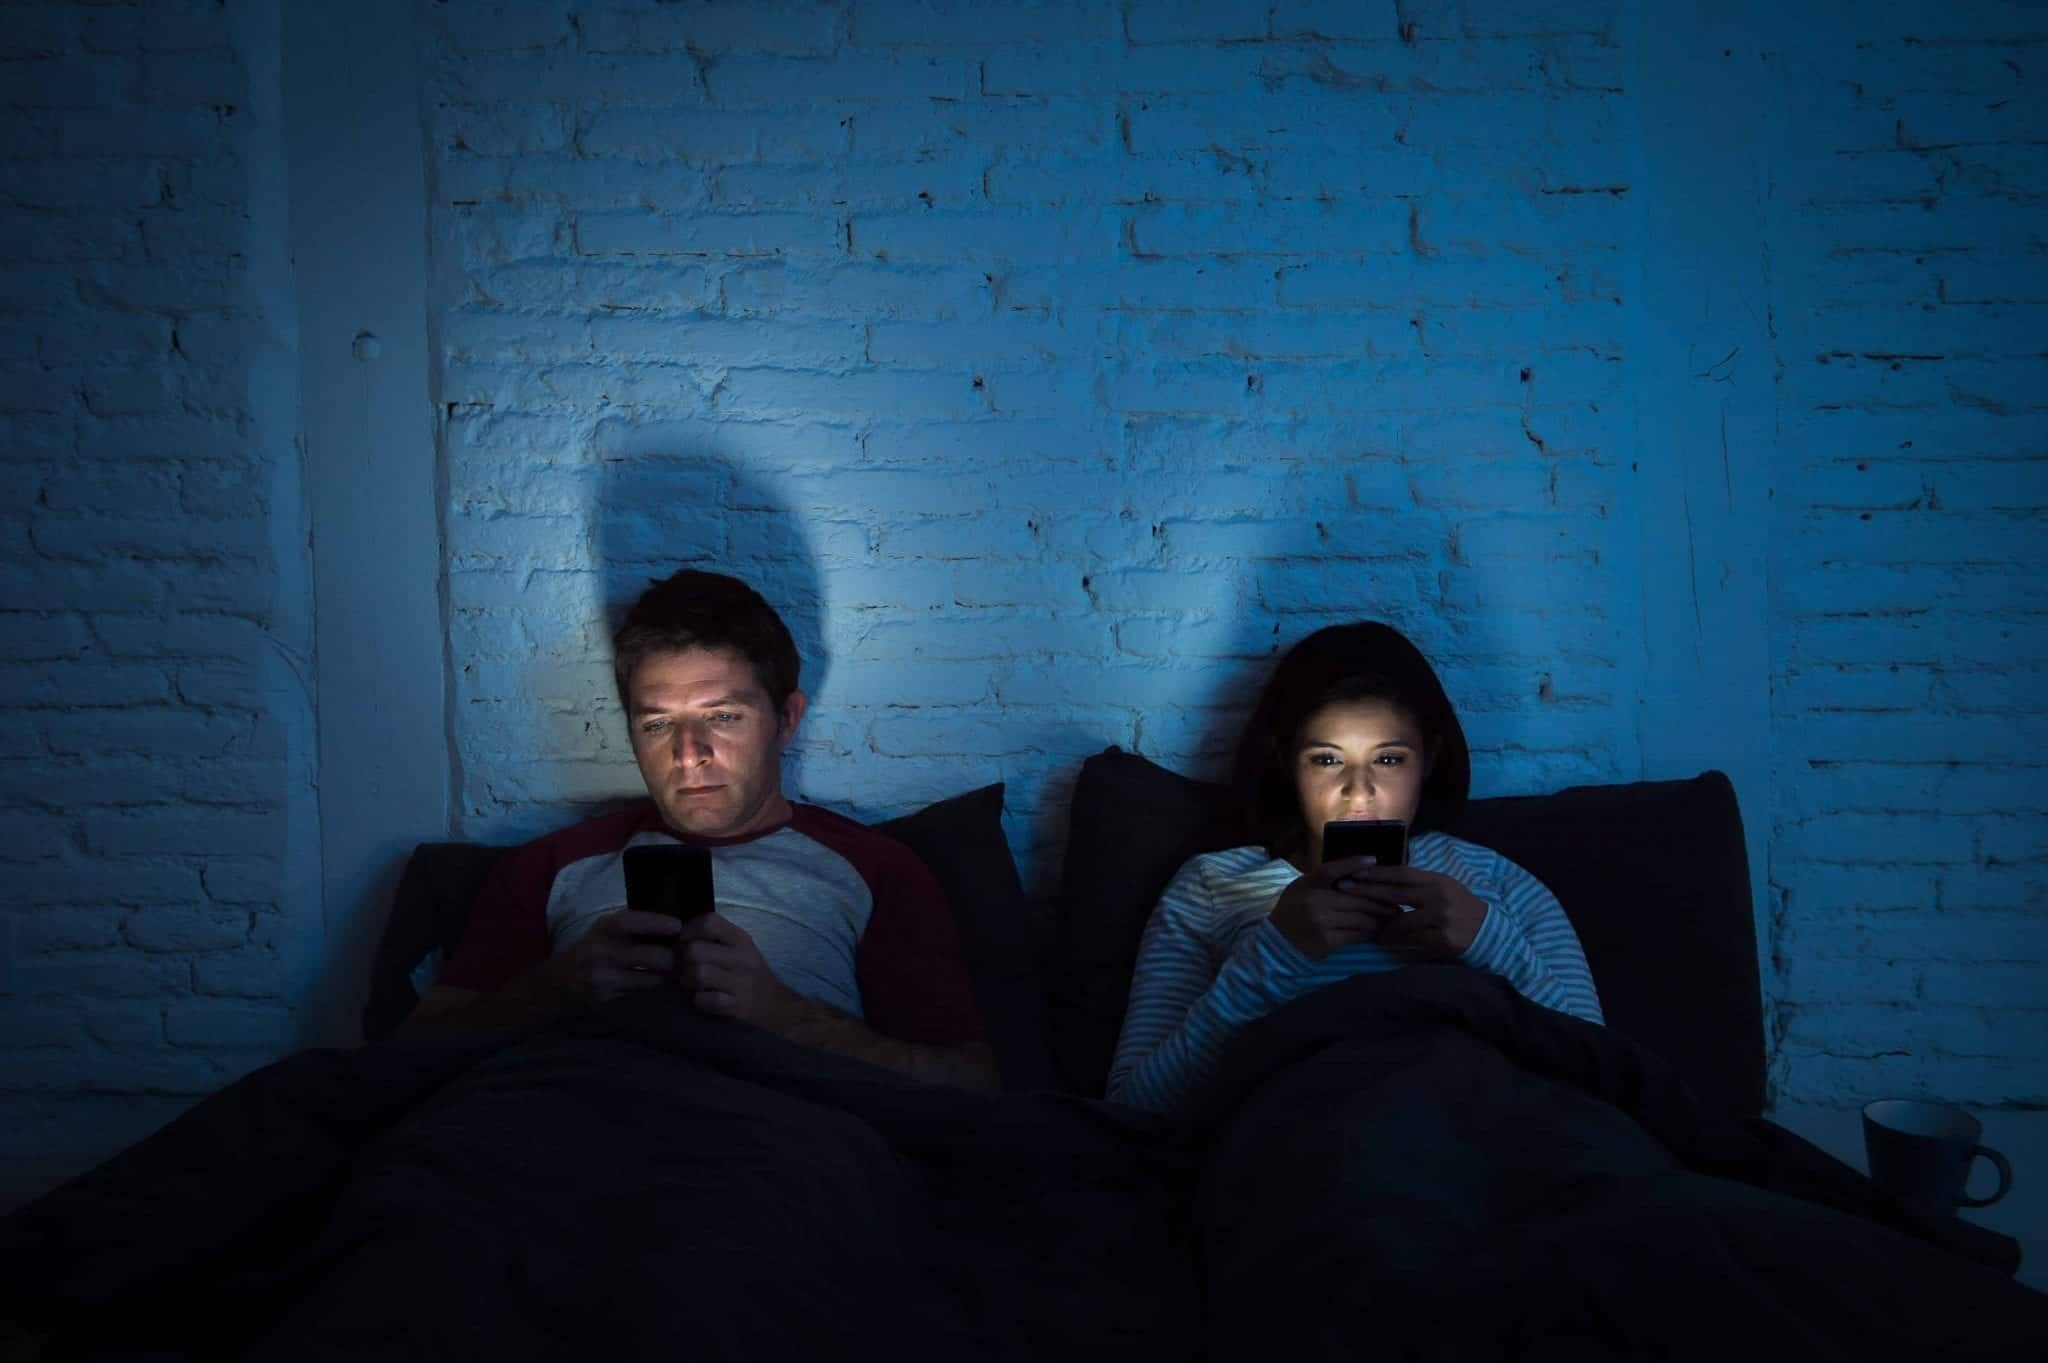 How social media affects and influences today's relationship